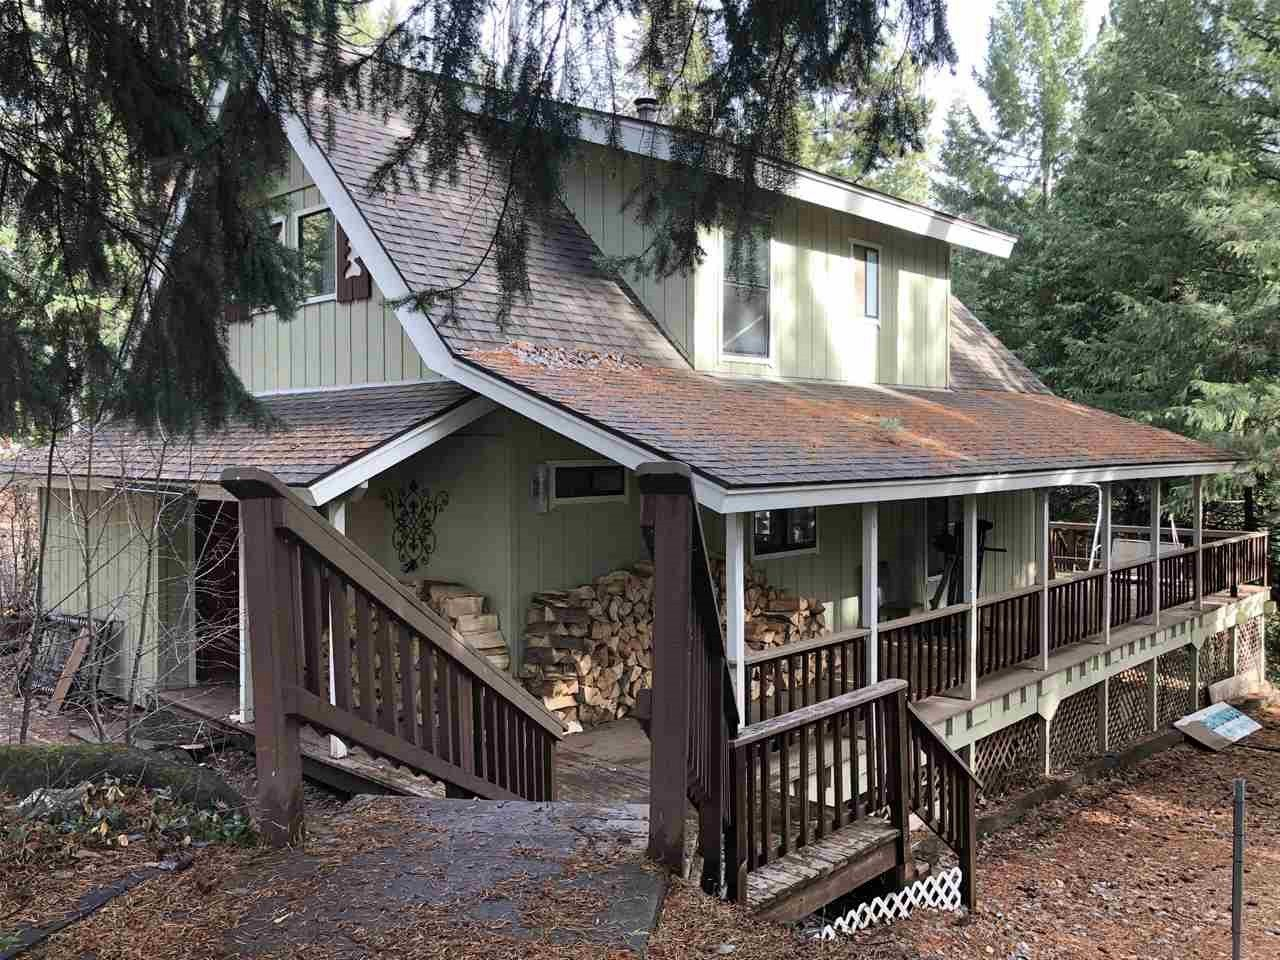 Single Family Home for Active at 3881 Walker Memorial Road A-13 3881 Walker Memorial Road A-13 Lake Almanor, California 96137 United States